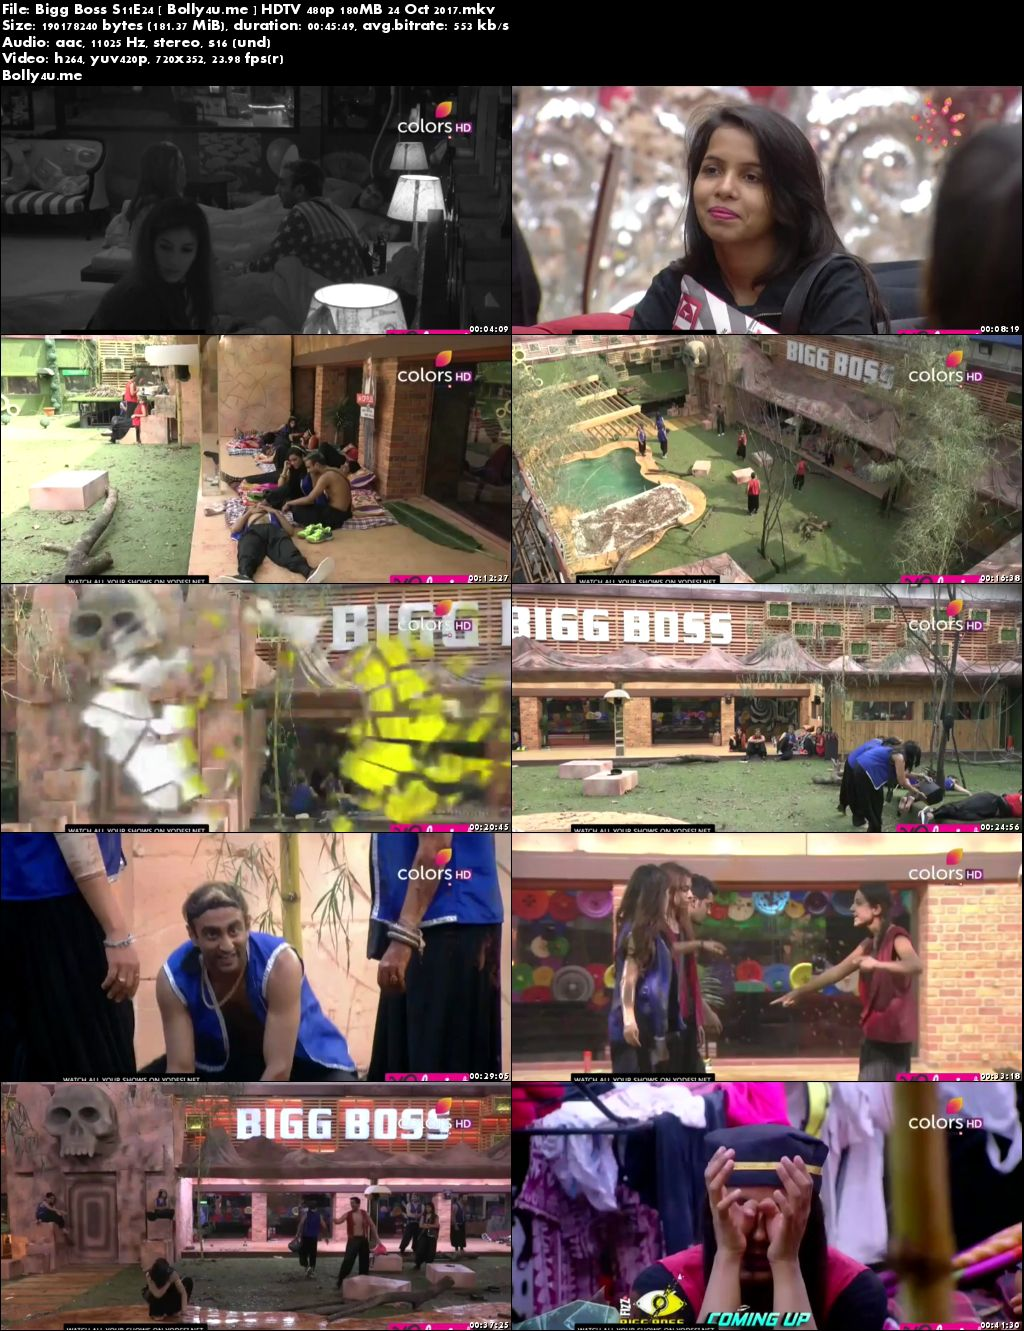 Bigg Boss S11E24 HDTV 480p 150MB 24 Oct 2017 Download